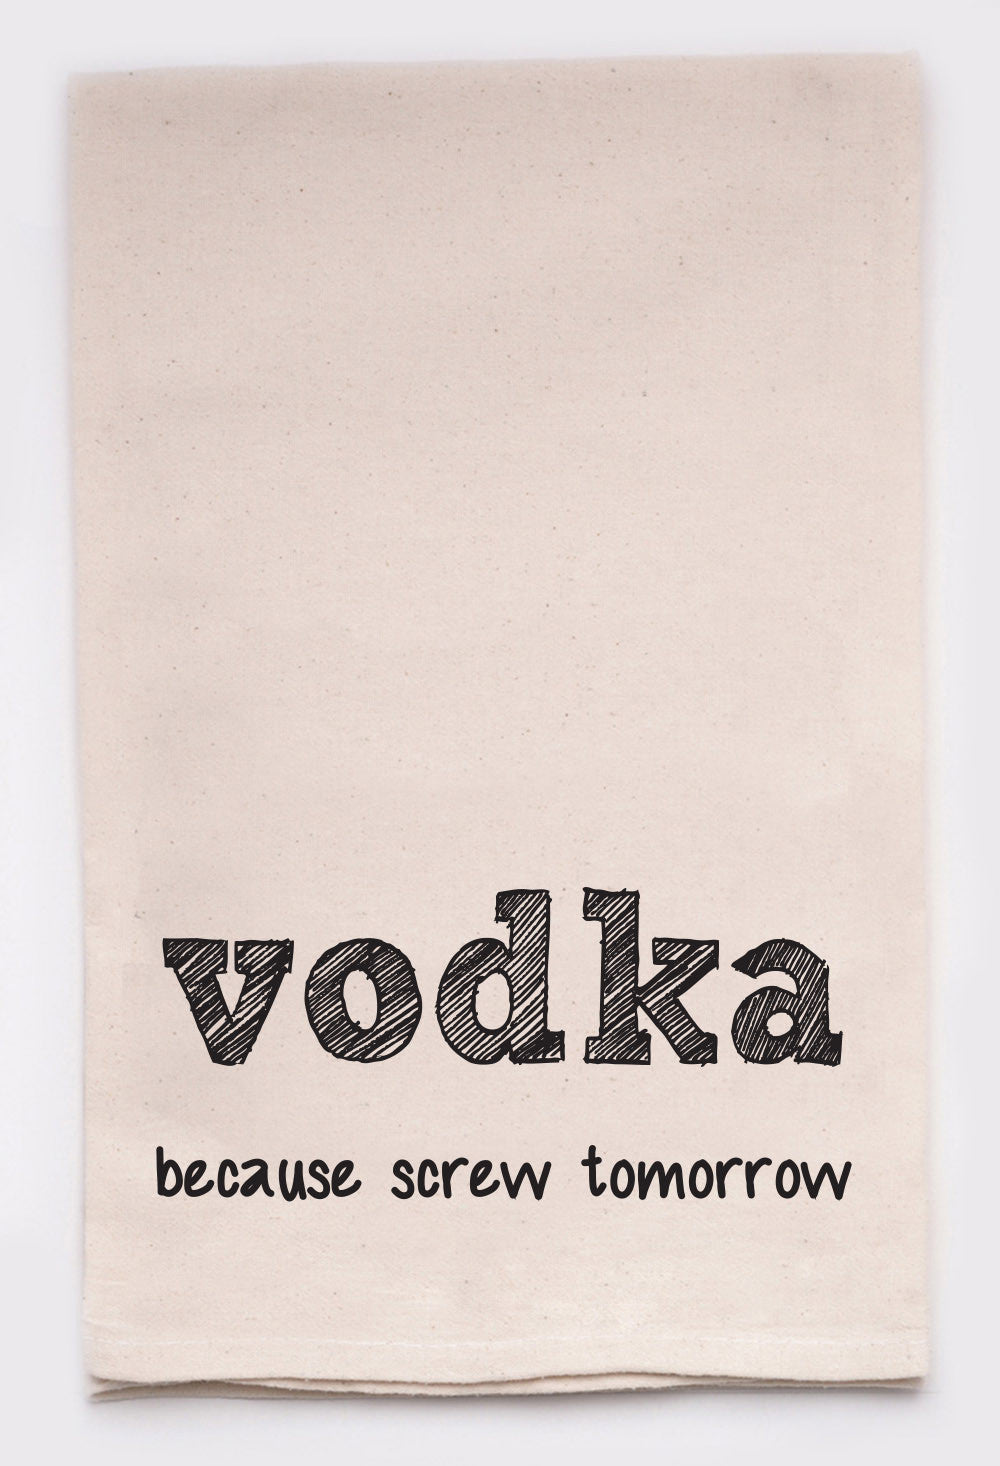 vodka because screw tomorrow